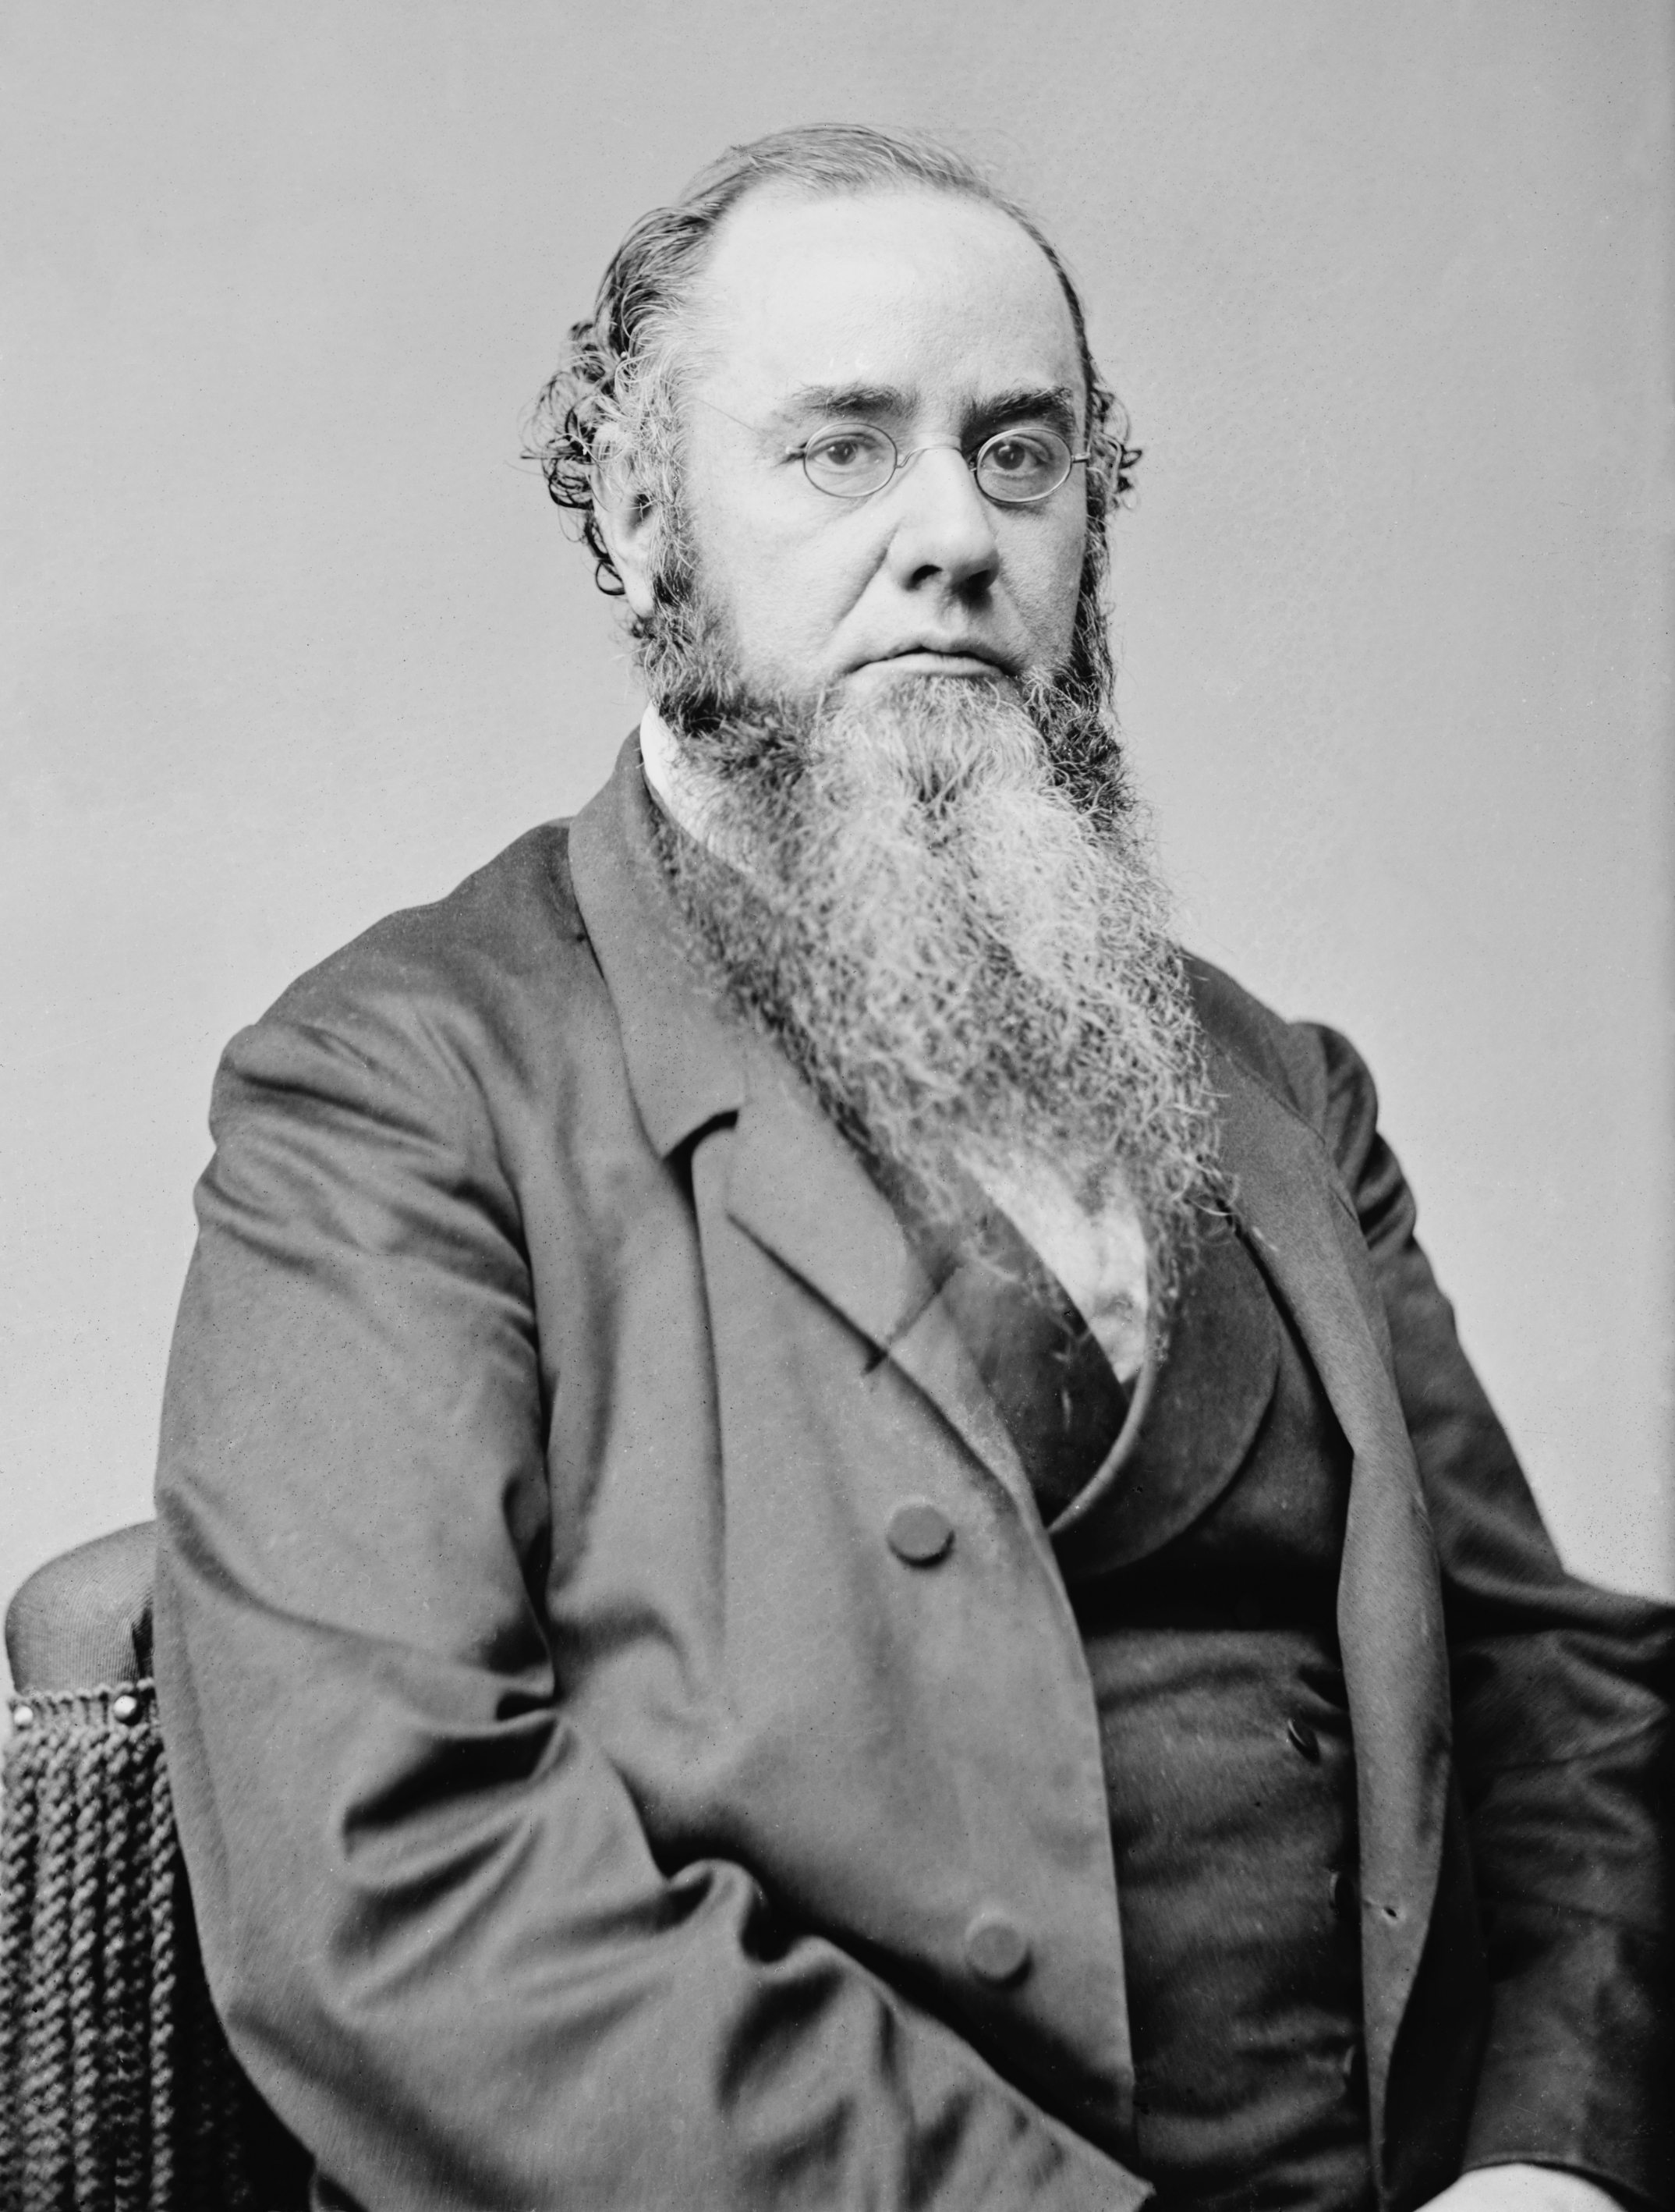 Picture of Edwin Stanton; the man for whom the school is named.